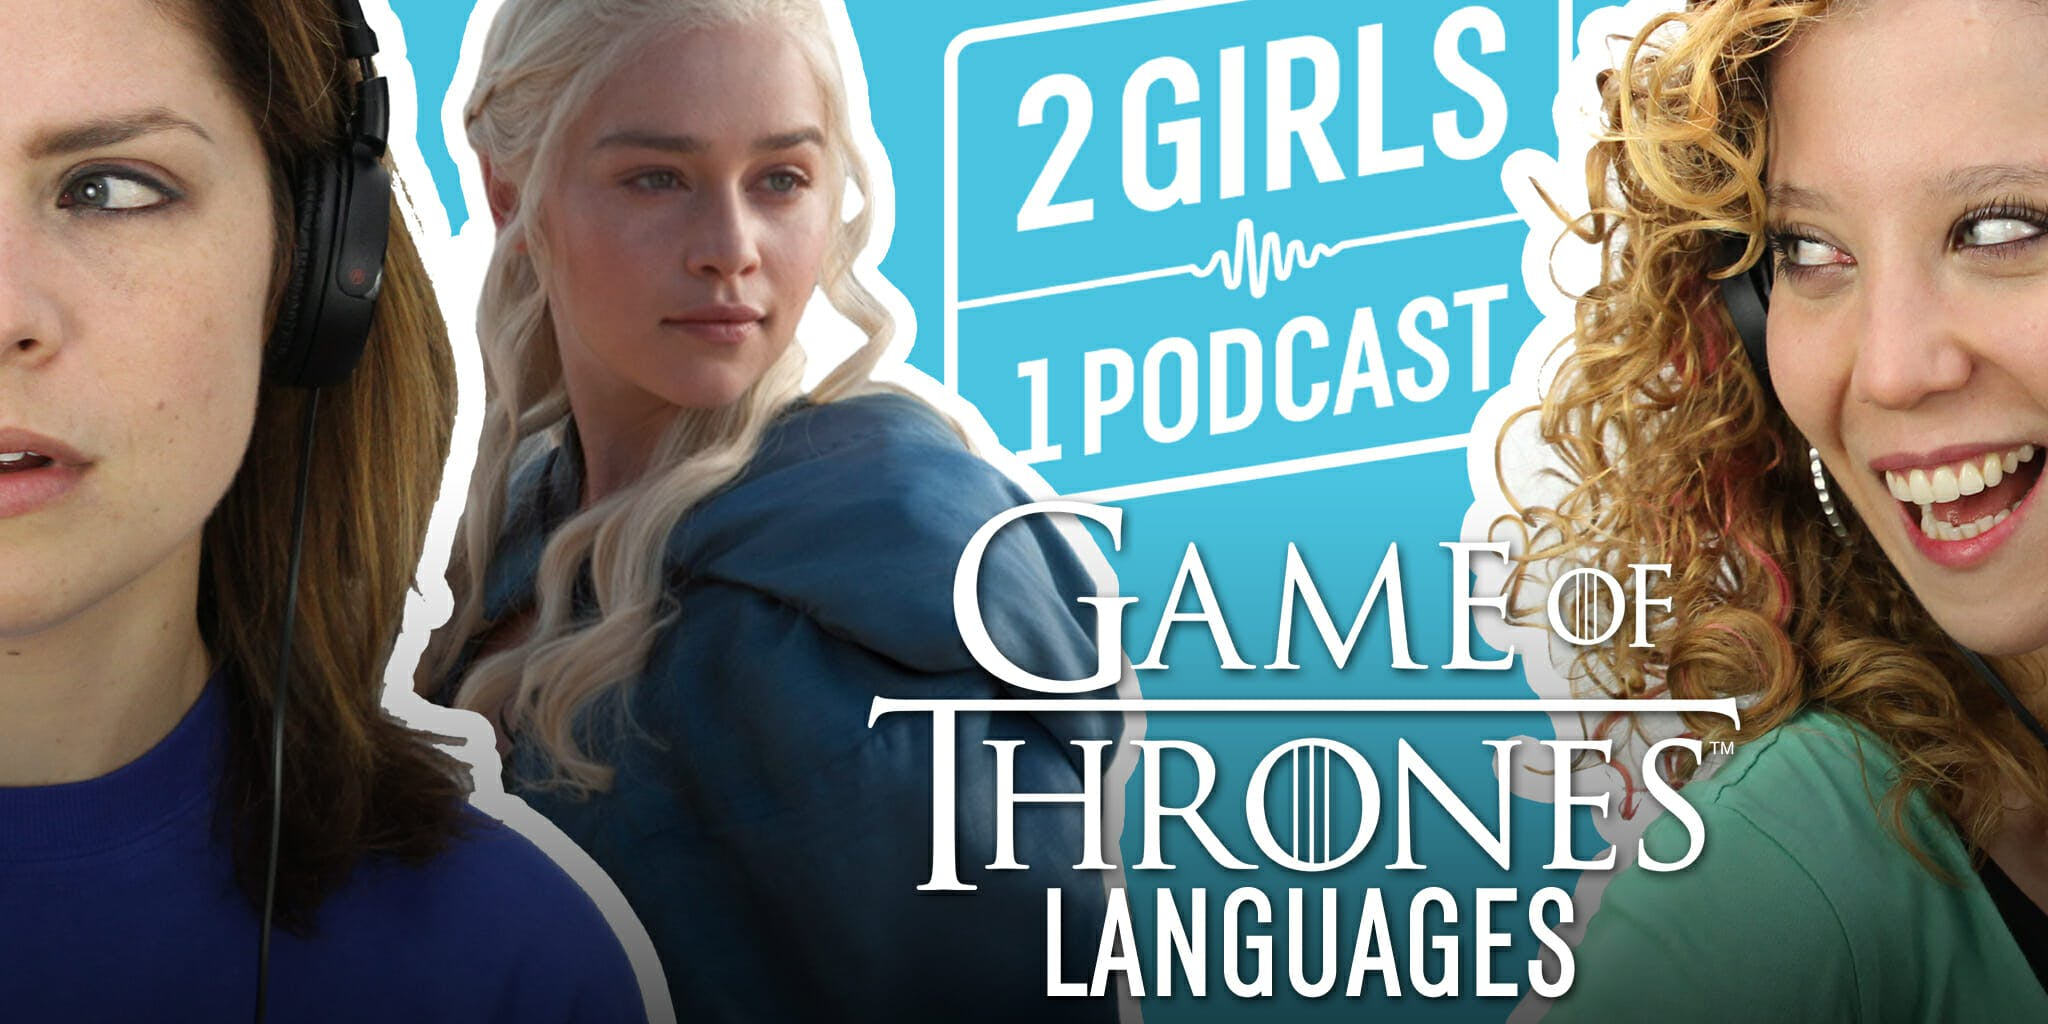 2 Girls 1 Podcast Game of Thrones